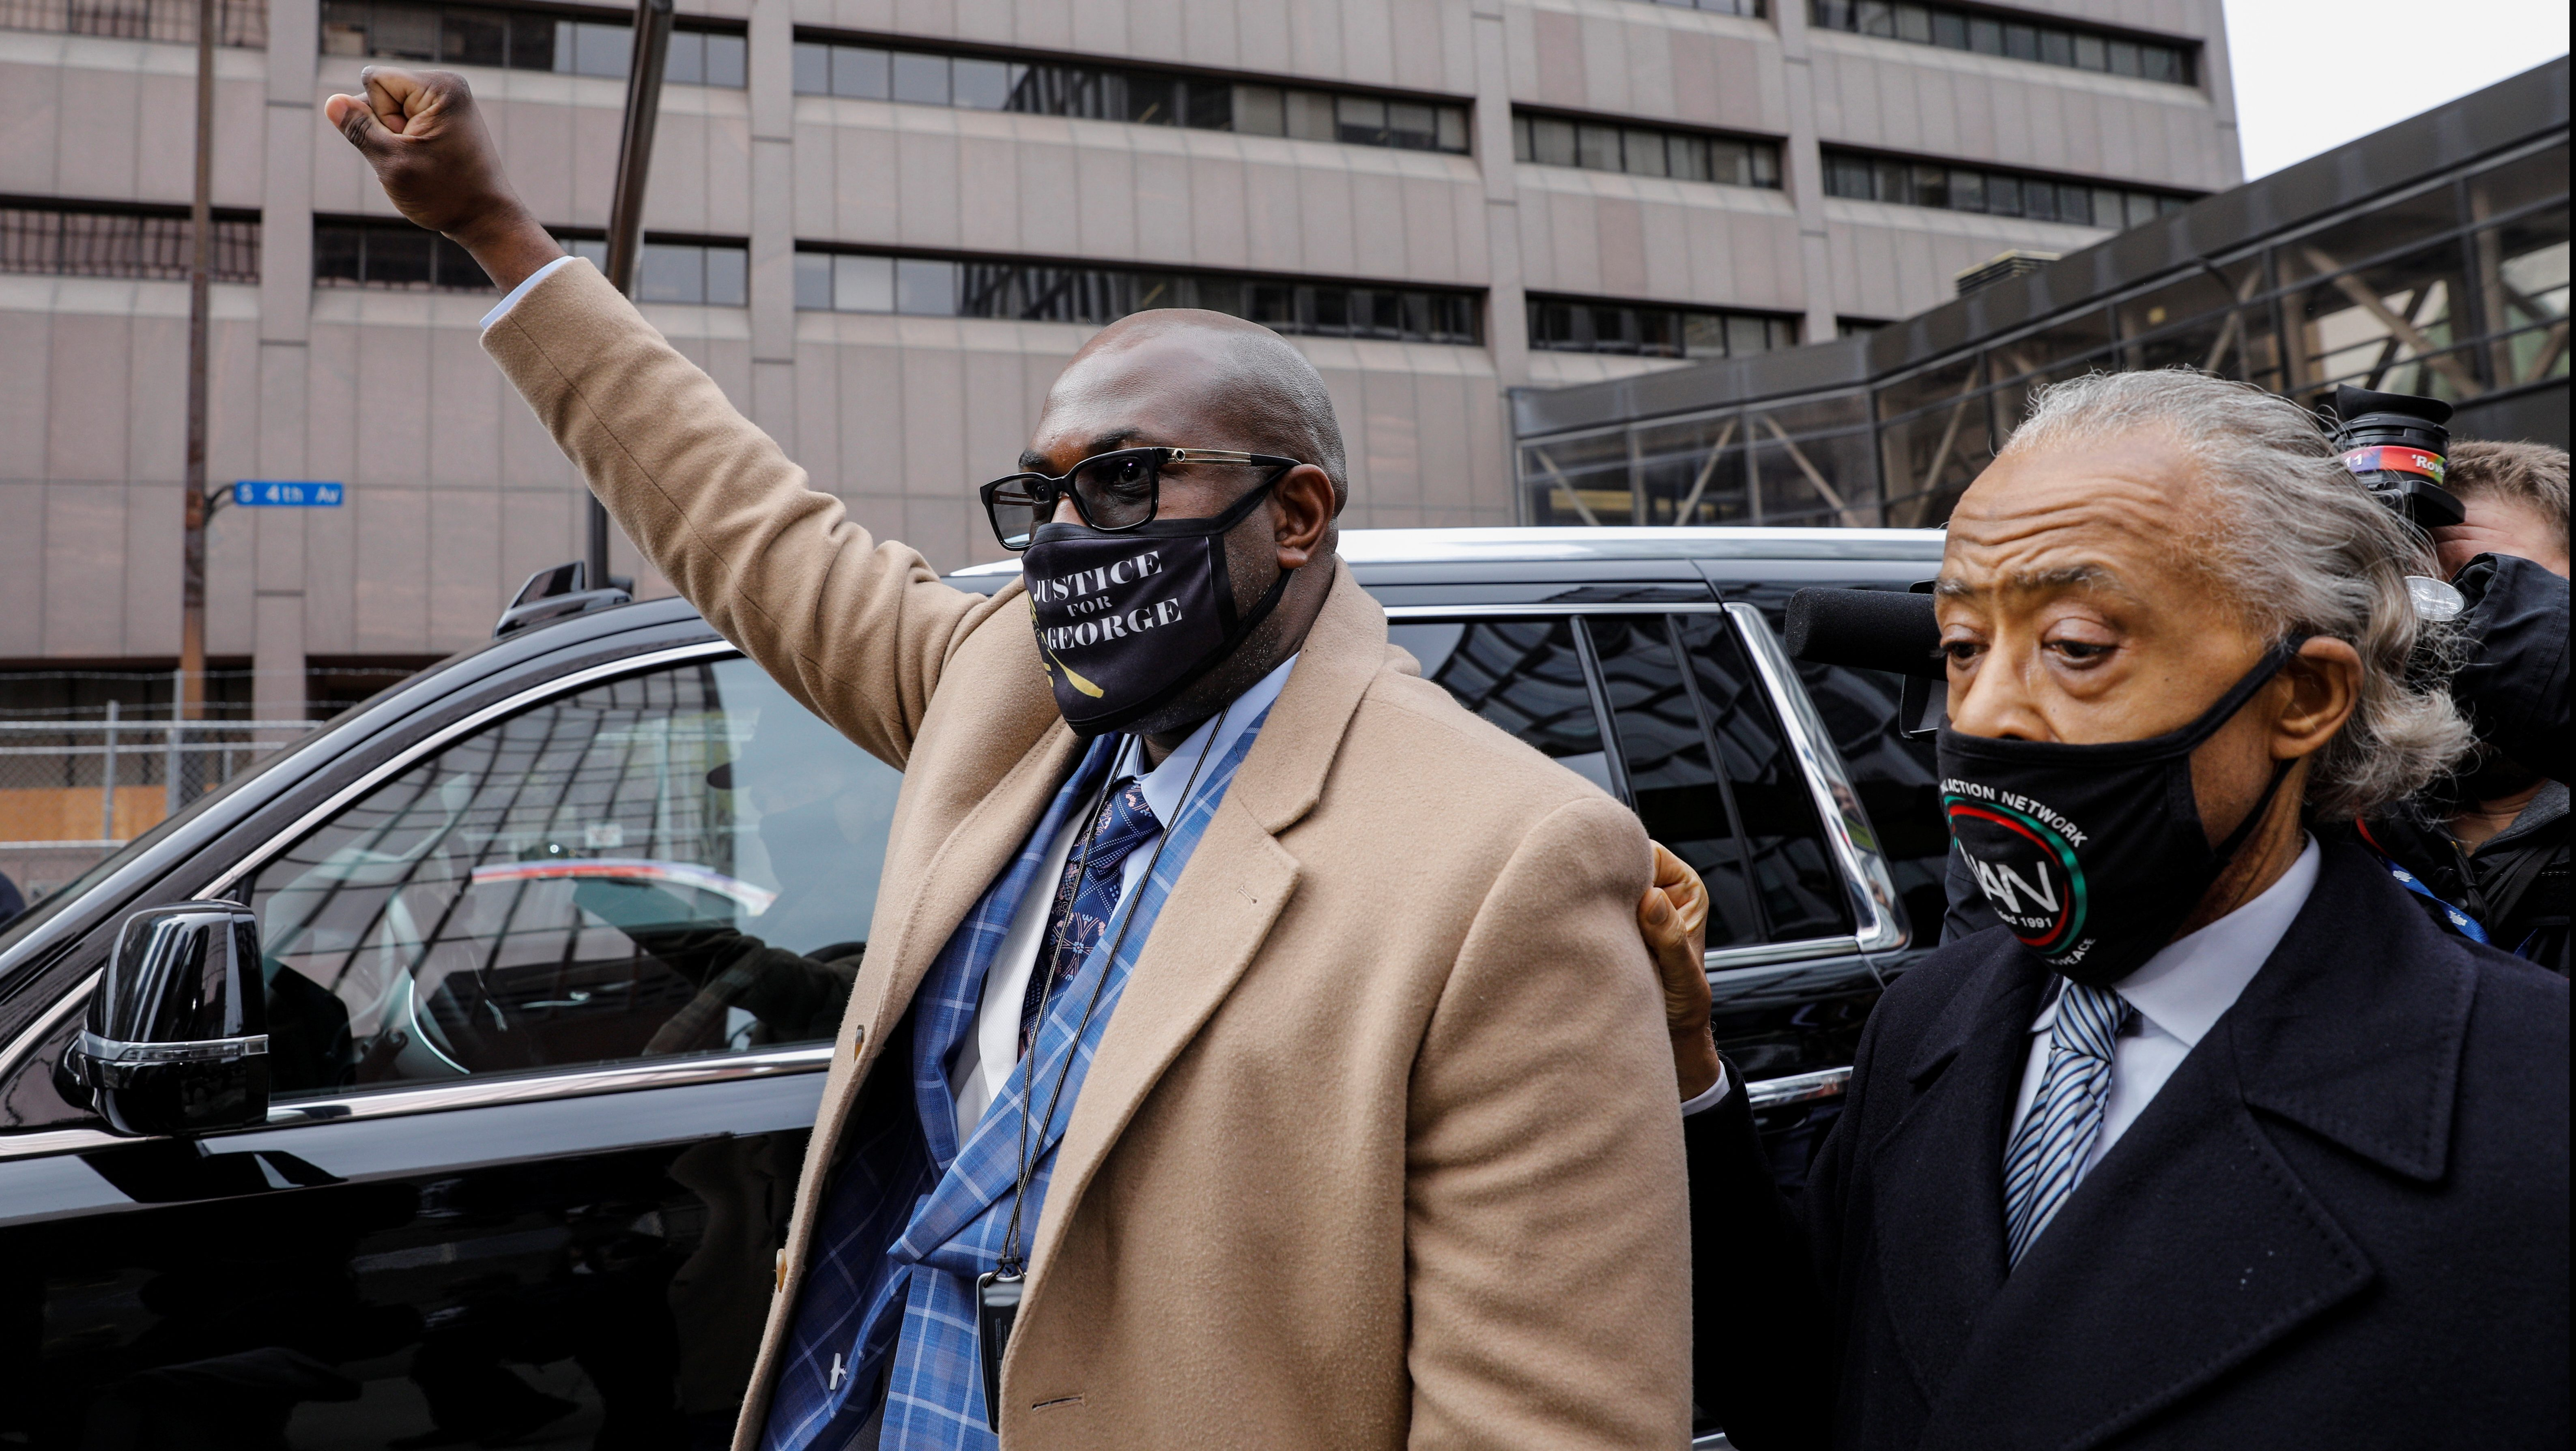 George Floyd's brother Philonise Floyd and Reverend Al Sharpton leave the Hennepin County Government Center on April 19, 2021.